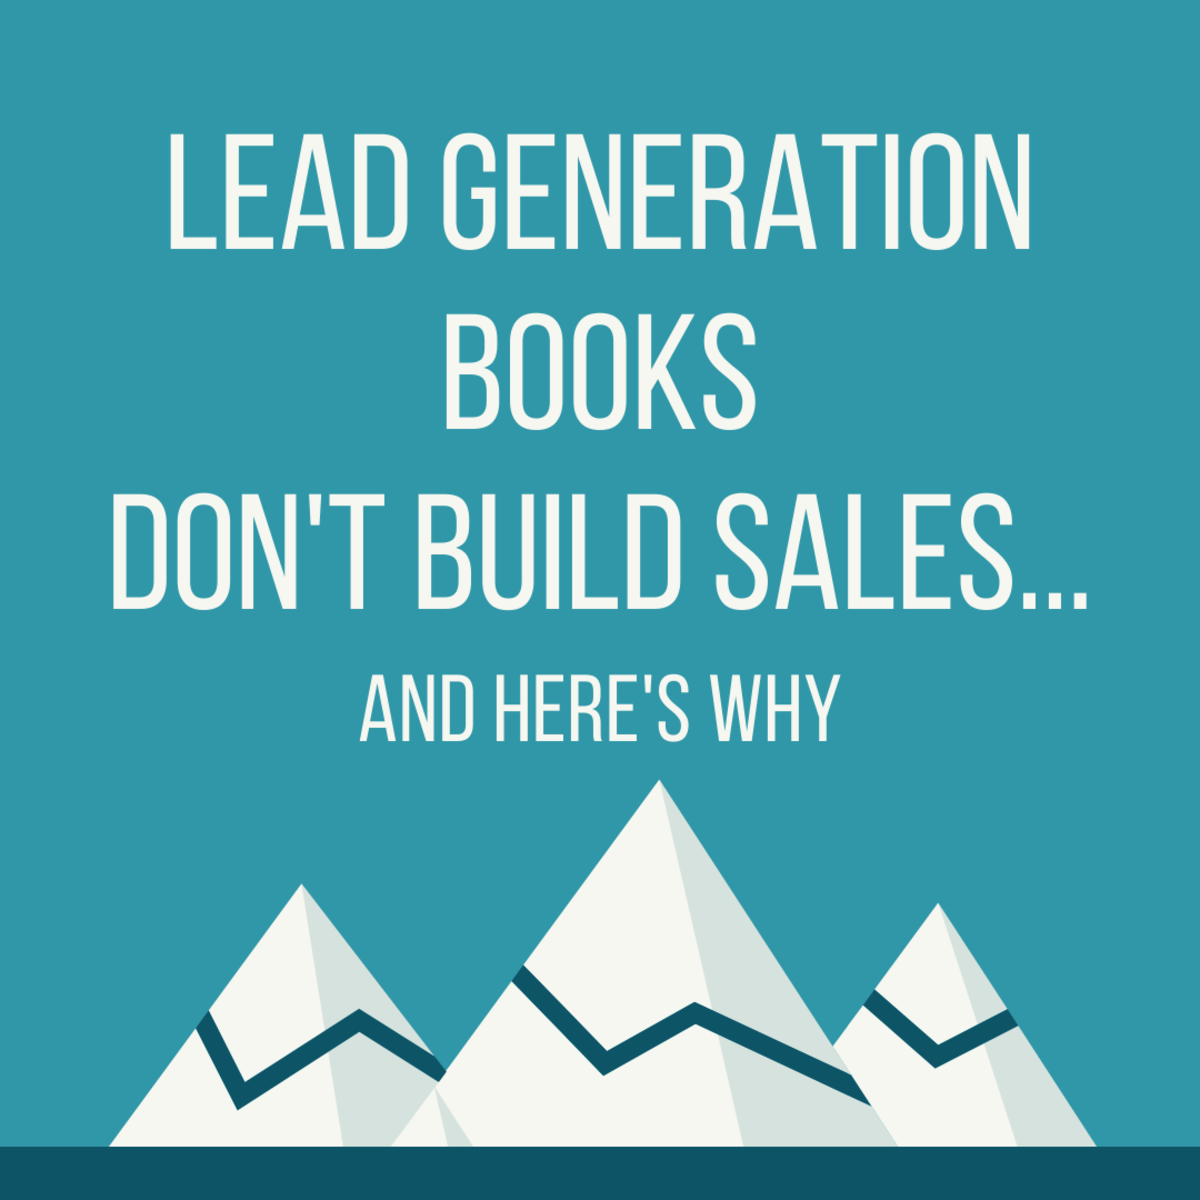 Lead Generation Books Don't Build Sales... and Here's Why